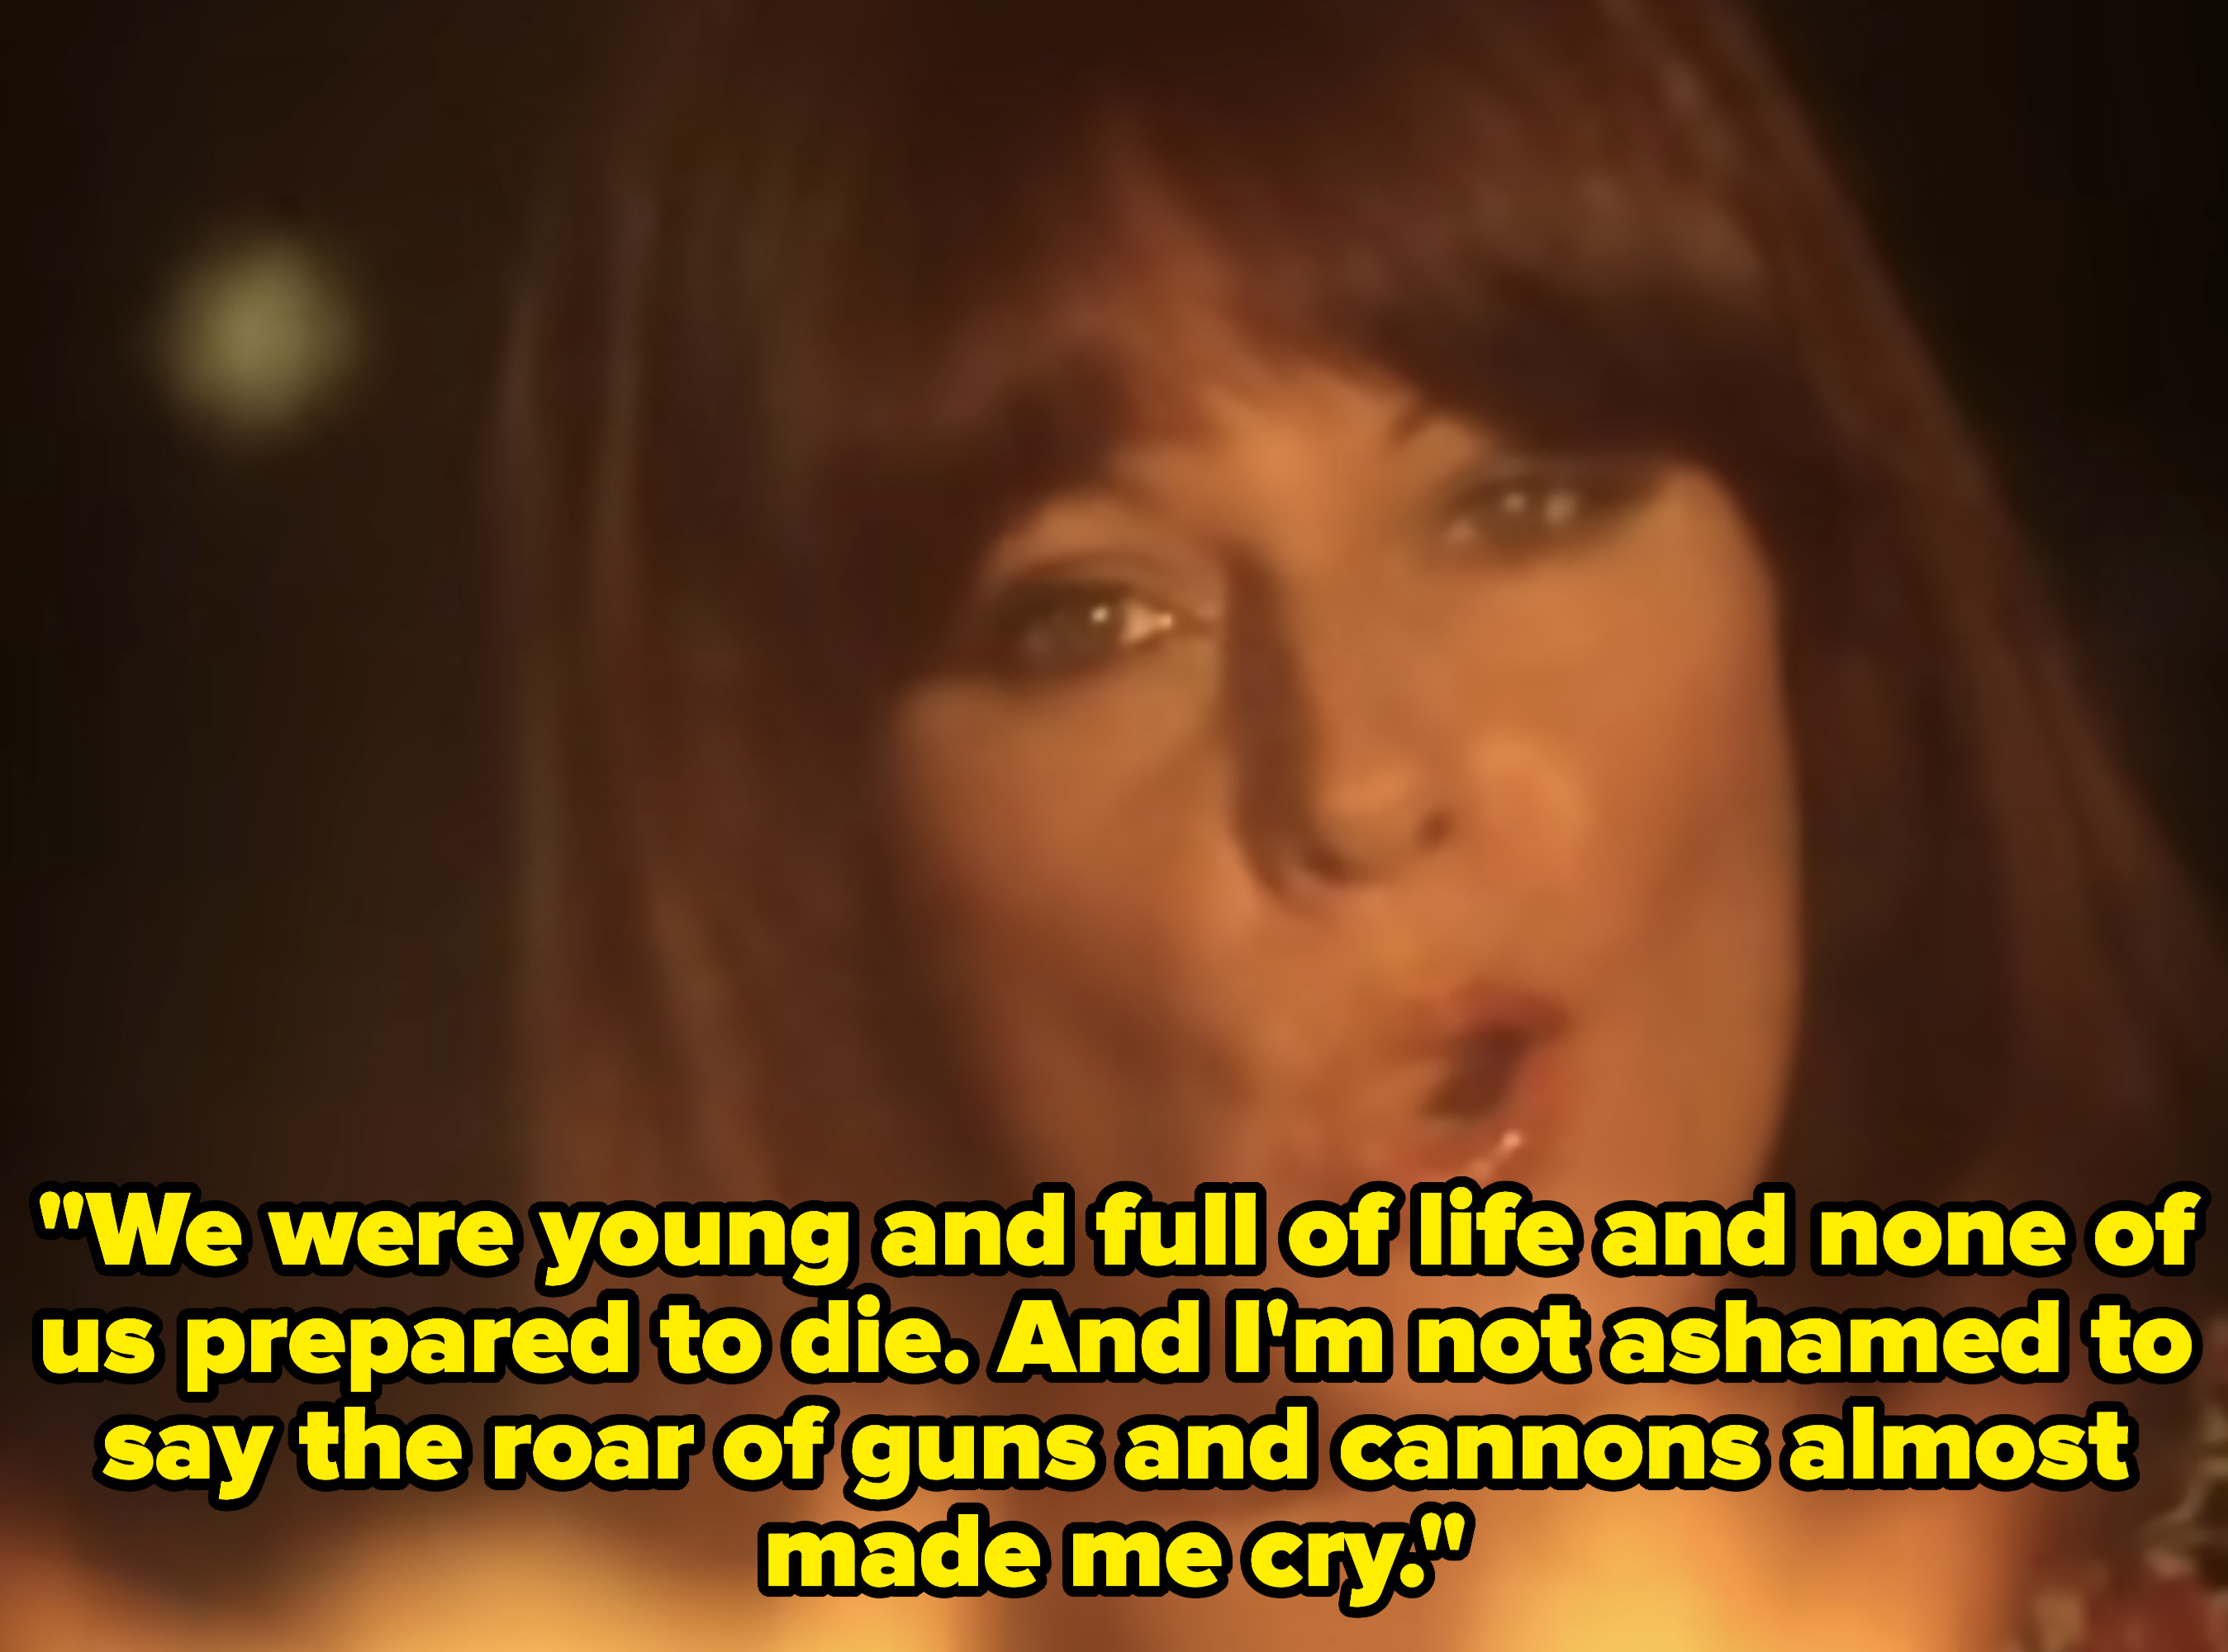 """ABBA singing """"Fernando"""" with the lyrics,""""We were young and full of life and none of us prepared to die. And I'm not ashamed to say the roar of guns and cannons almost made me cry"""""""